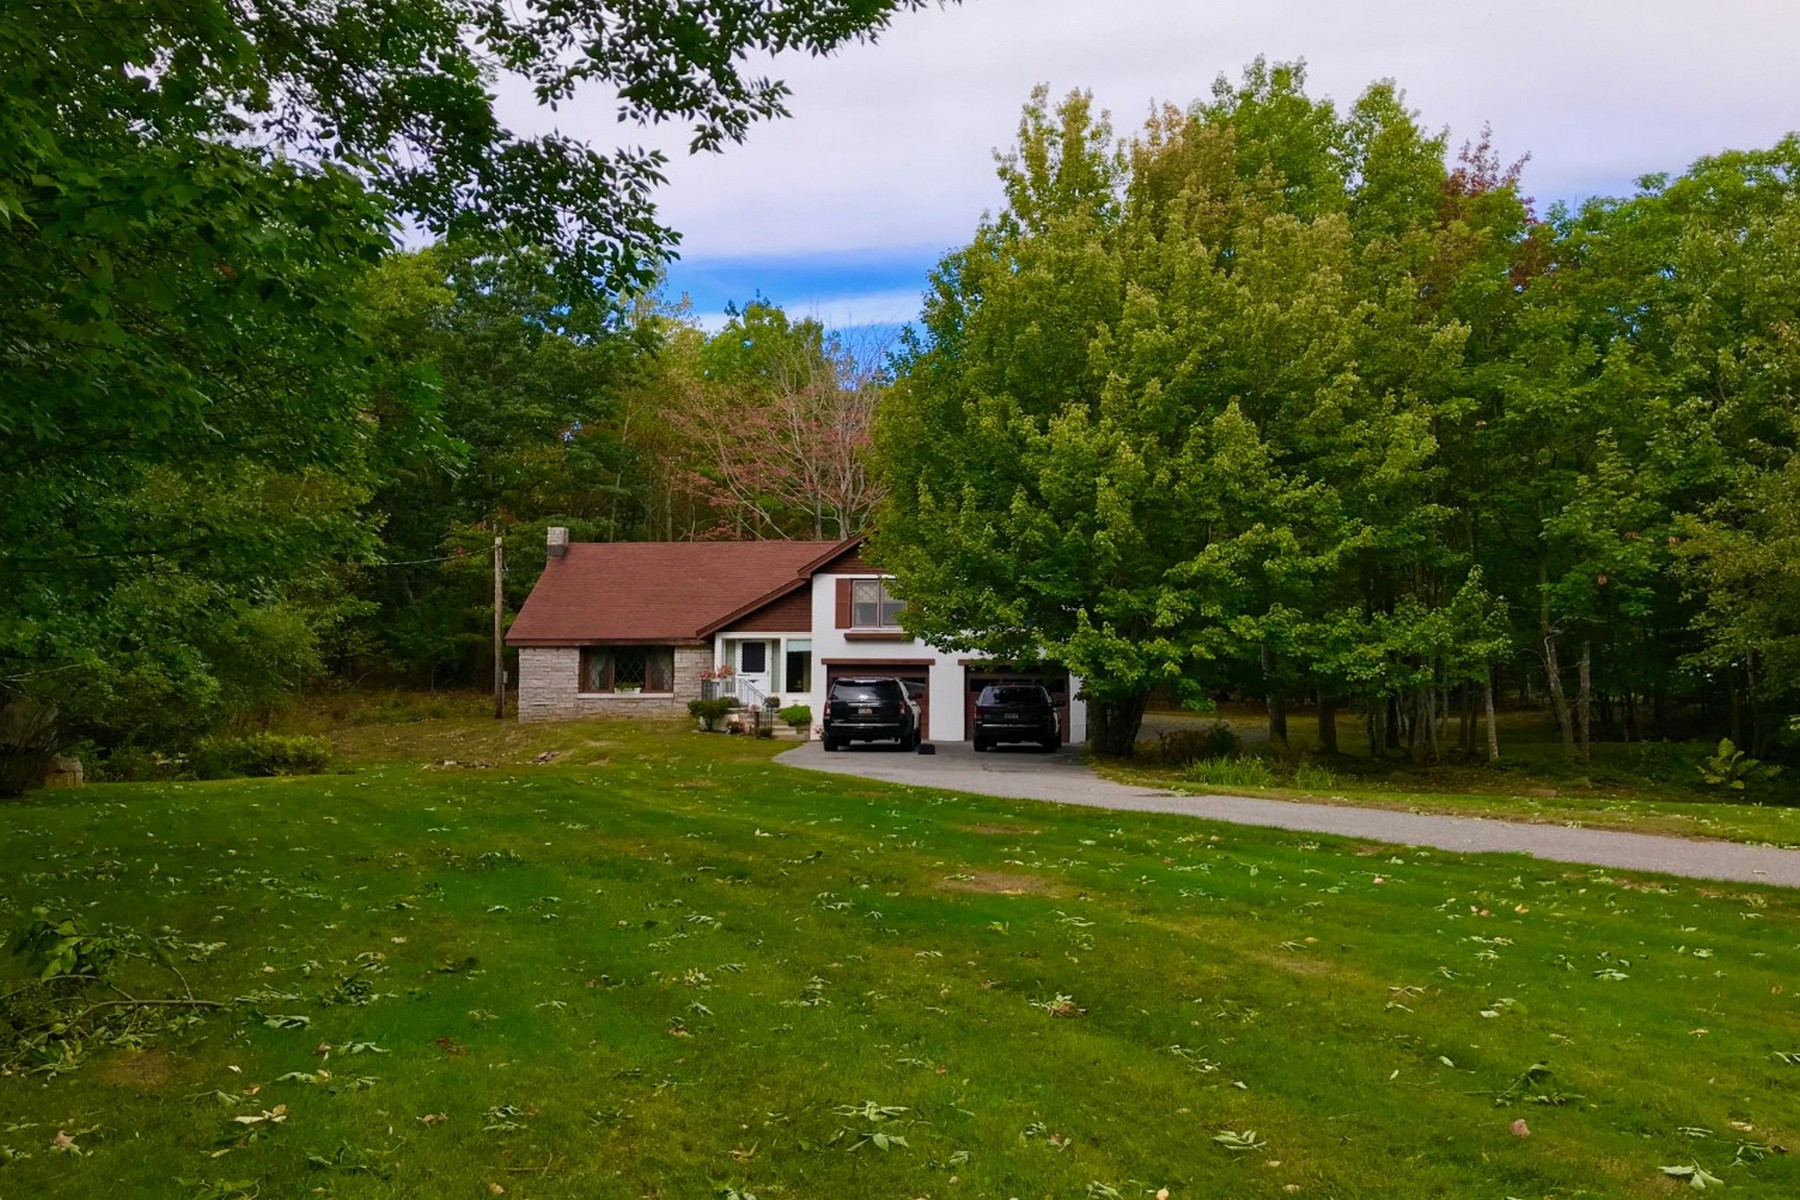 Single Family Homes for Sale at 5 Devon Road Bar Harbor, Maine 04609 United States